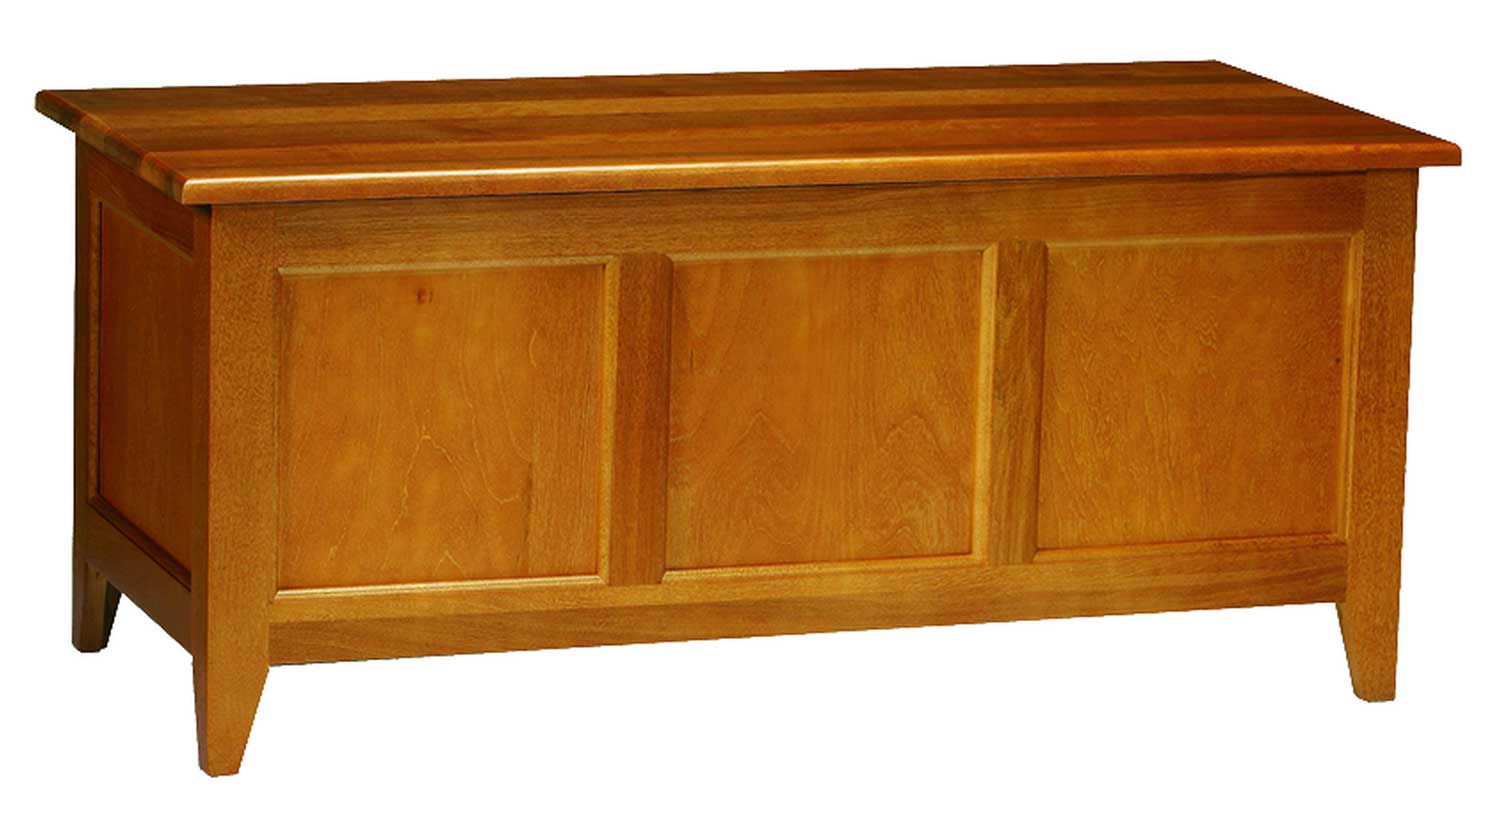 Circle furniture blanket chest bedroom storage for Storage chests for bedroom